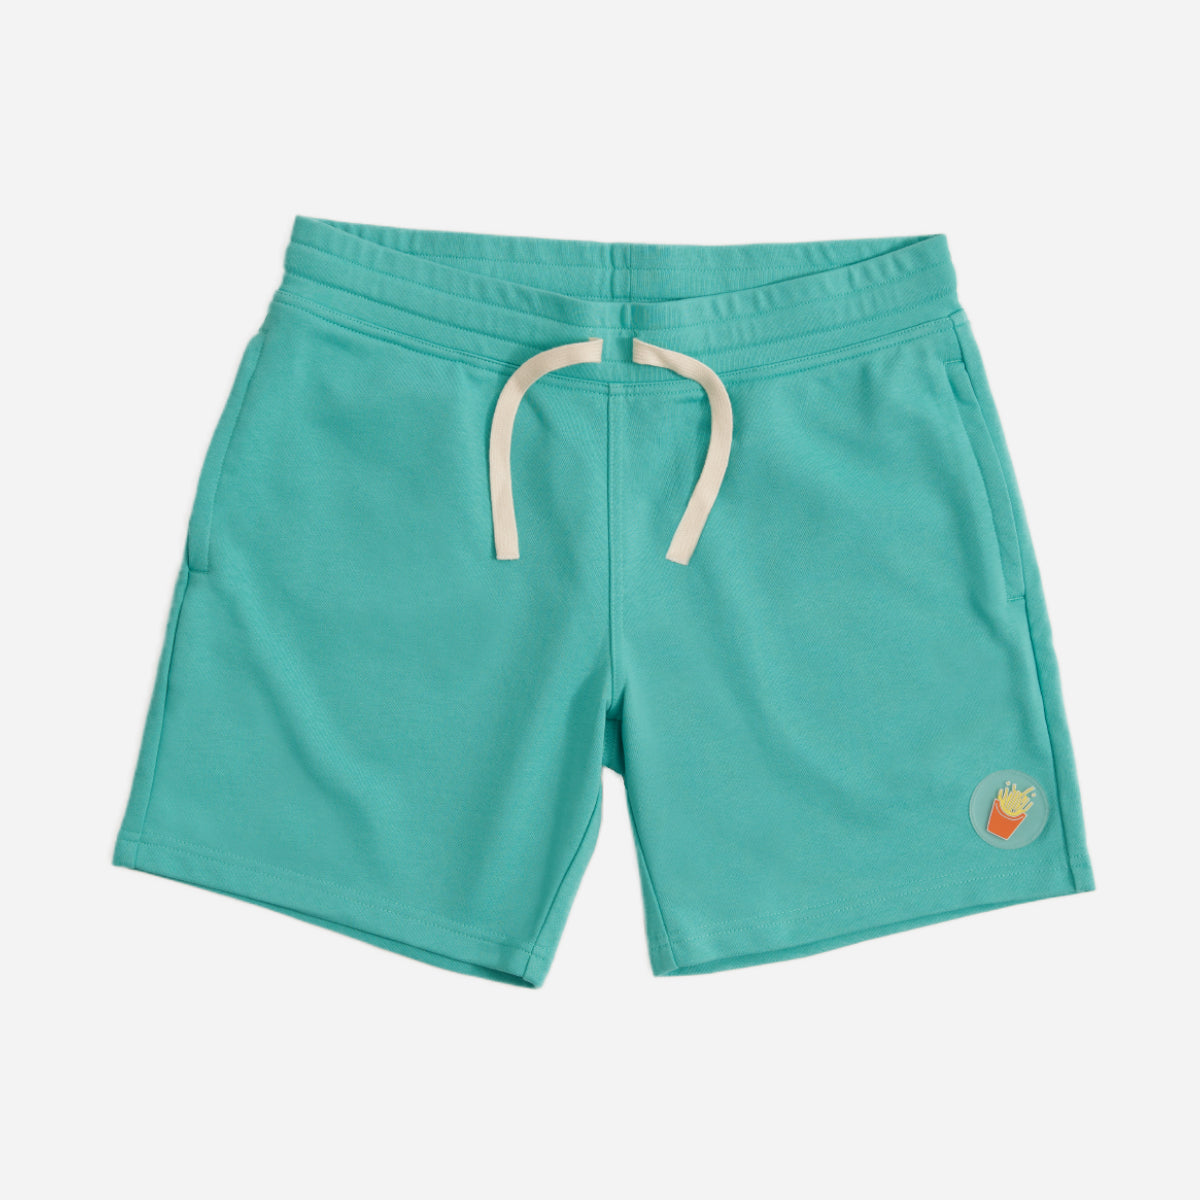 "7"" Fries Lounge Shorts"